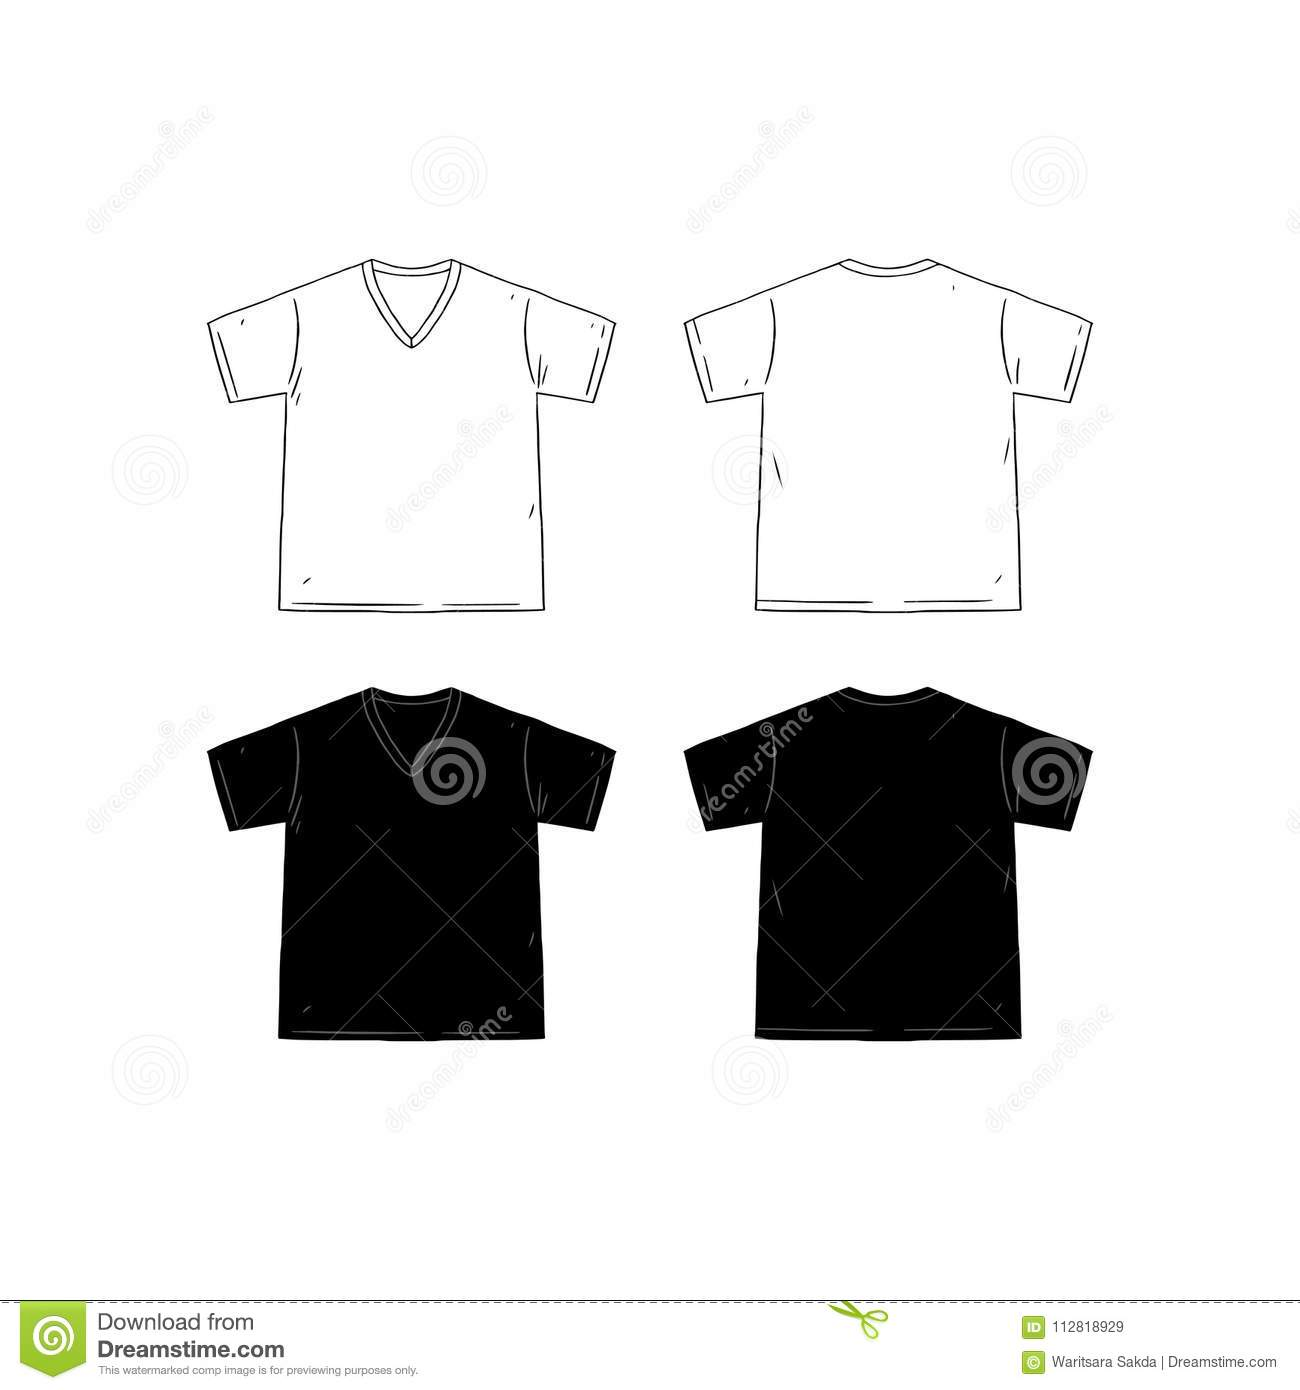 13e57ffa5fb4 Set of blank v-neck t-shirt design template hand drawn vector illustration.